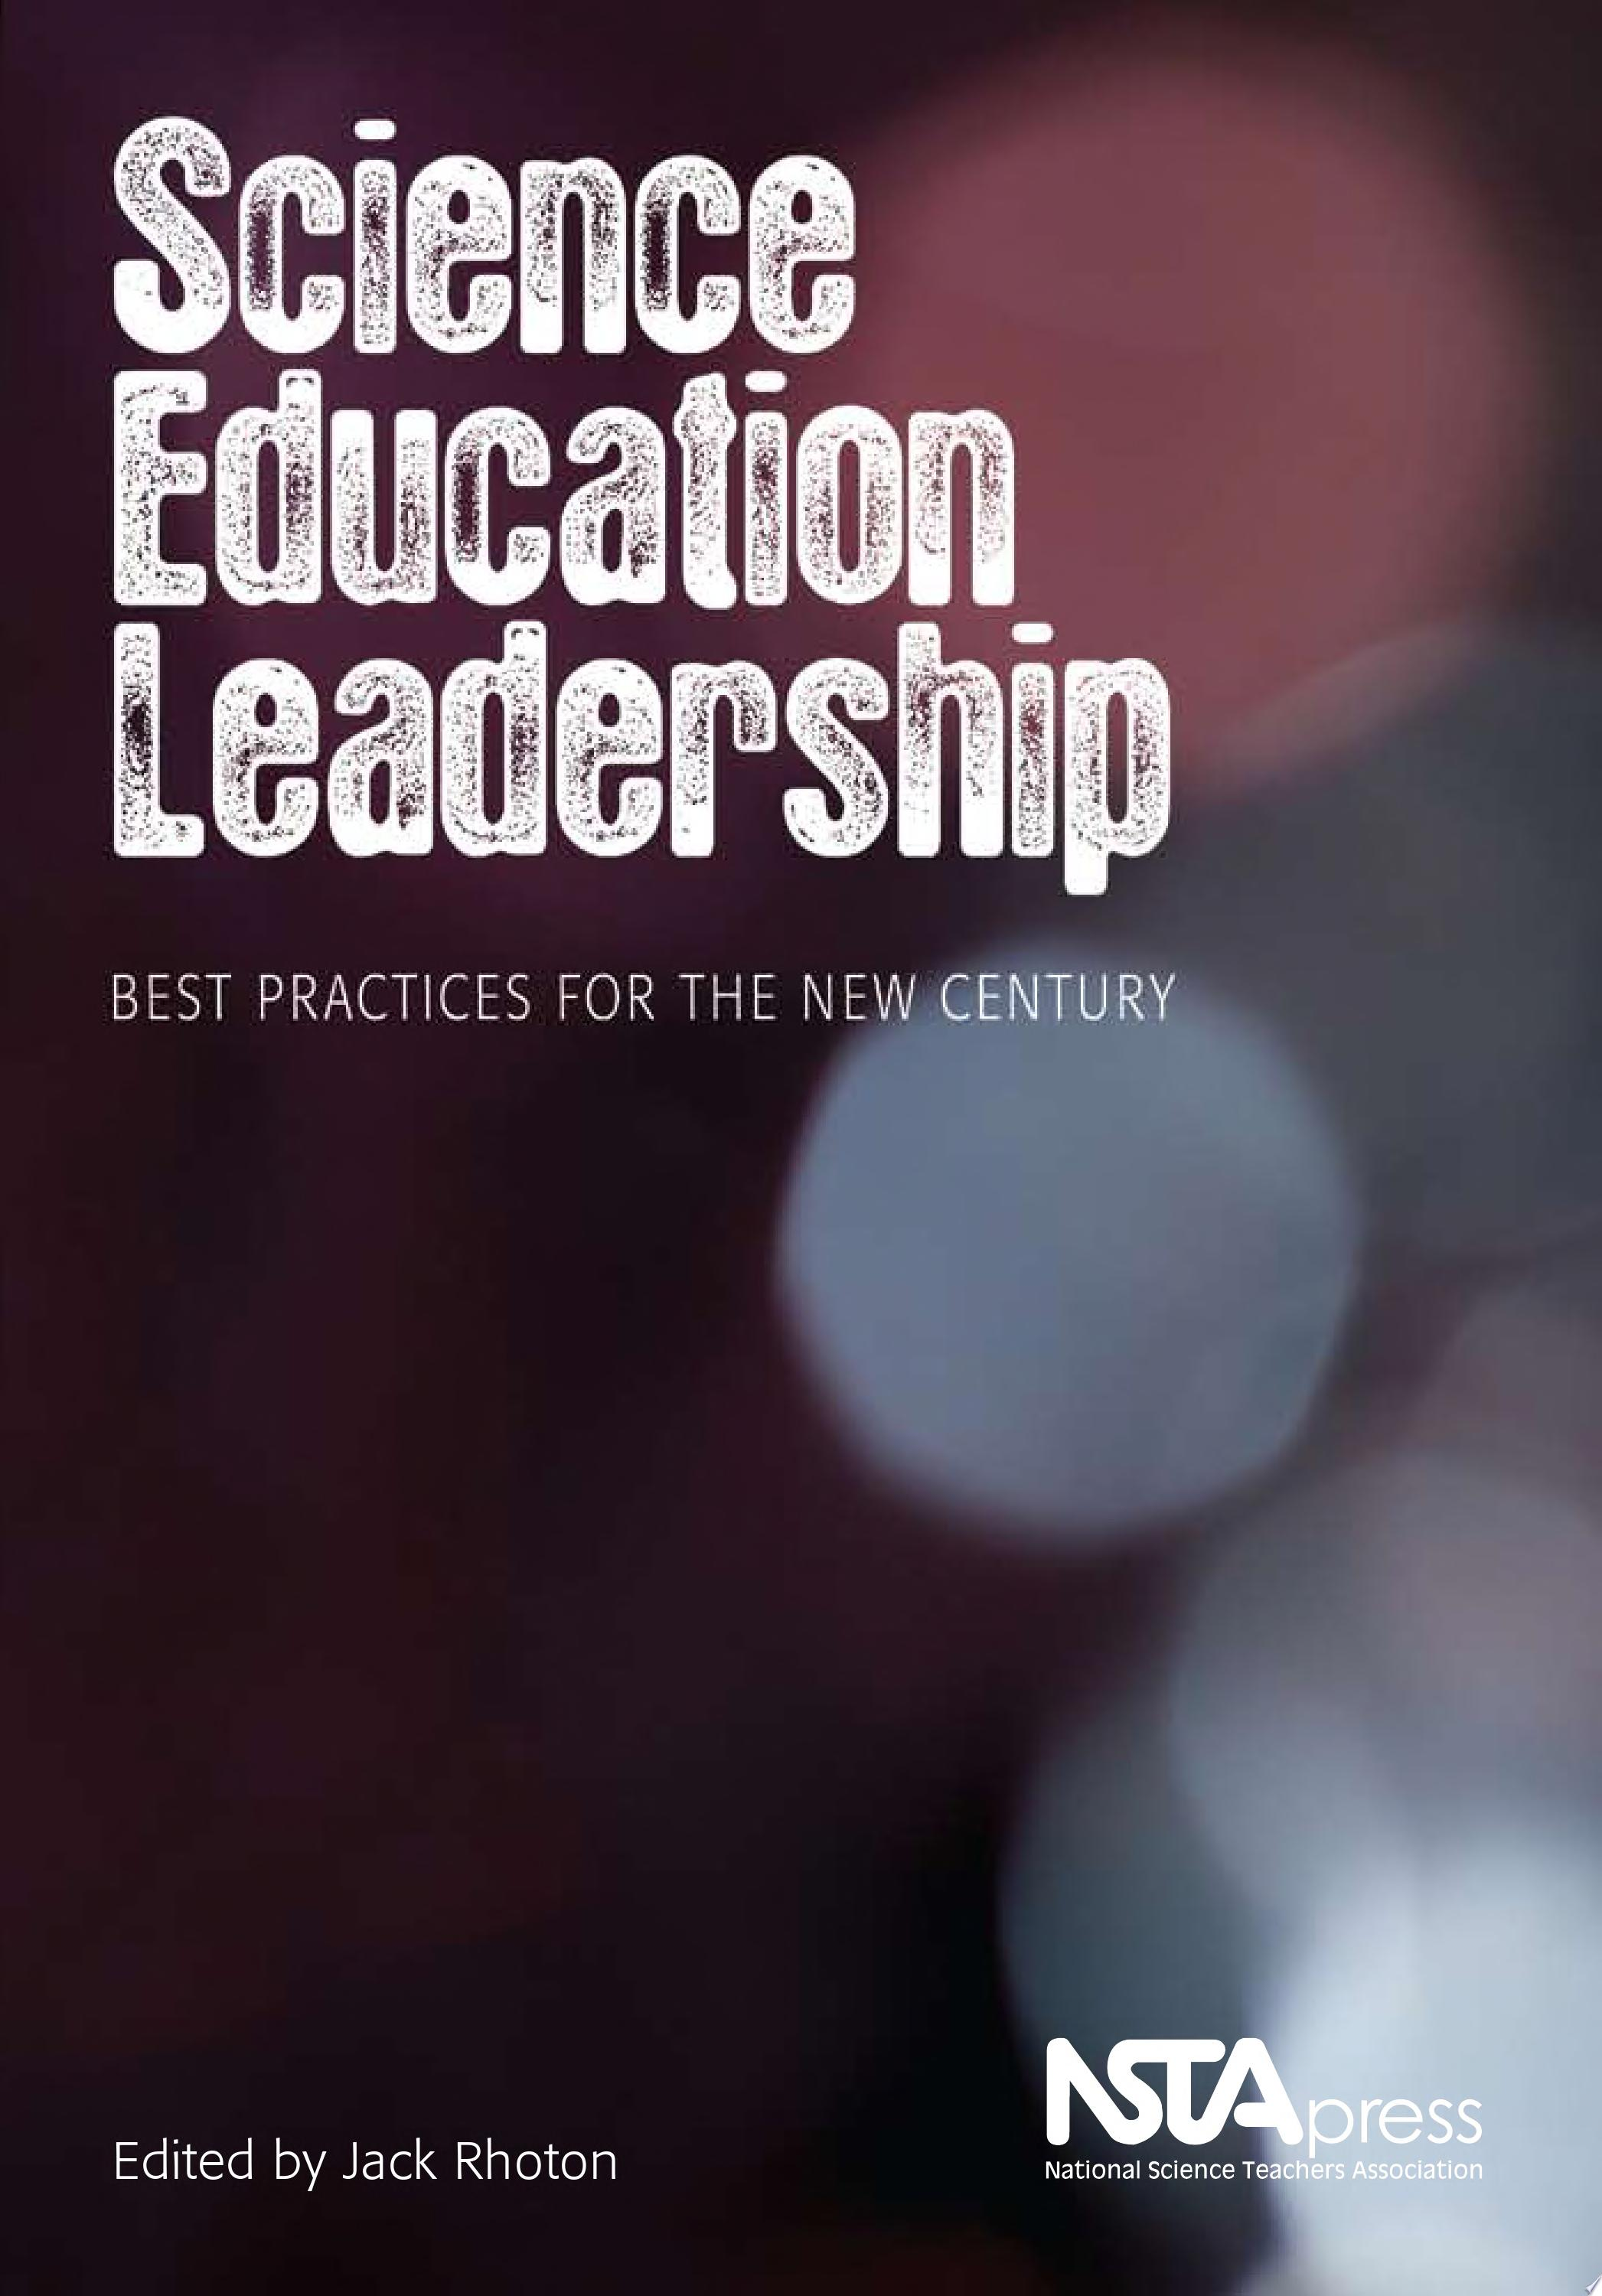 Science Education Leadership  Best Practices for the New Century